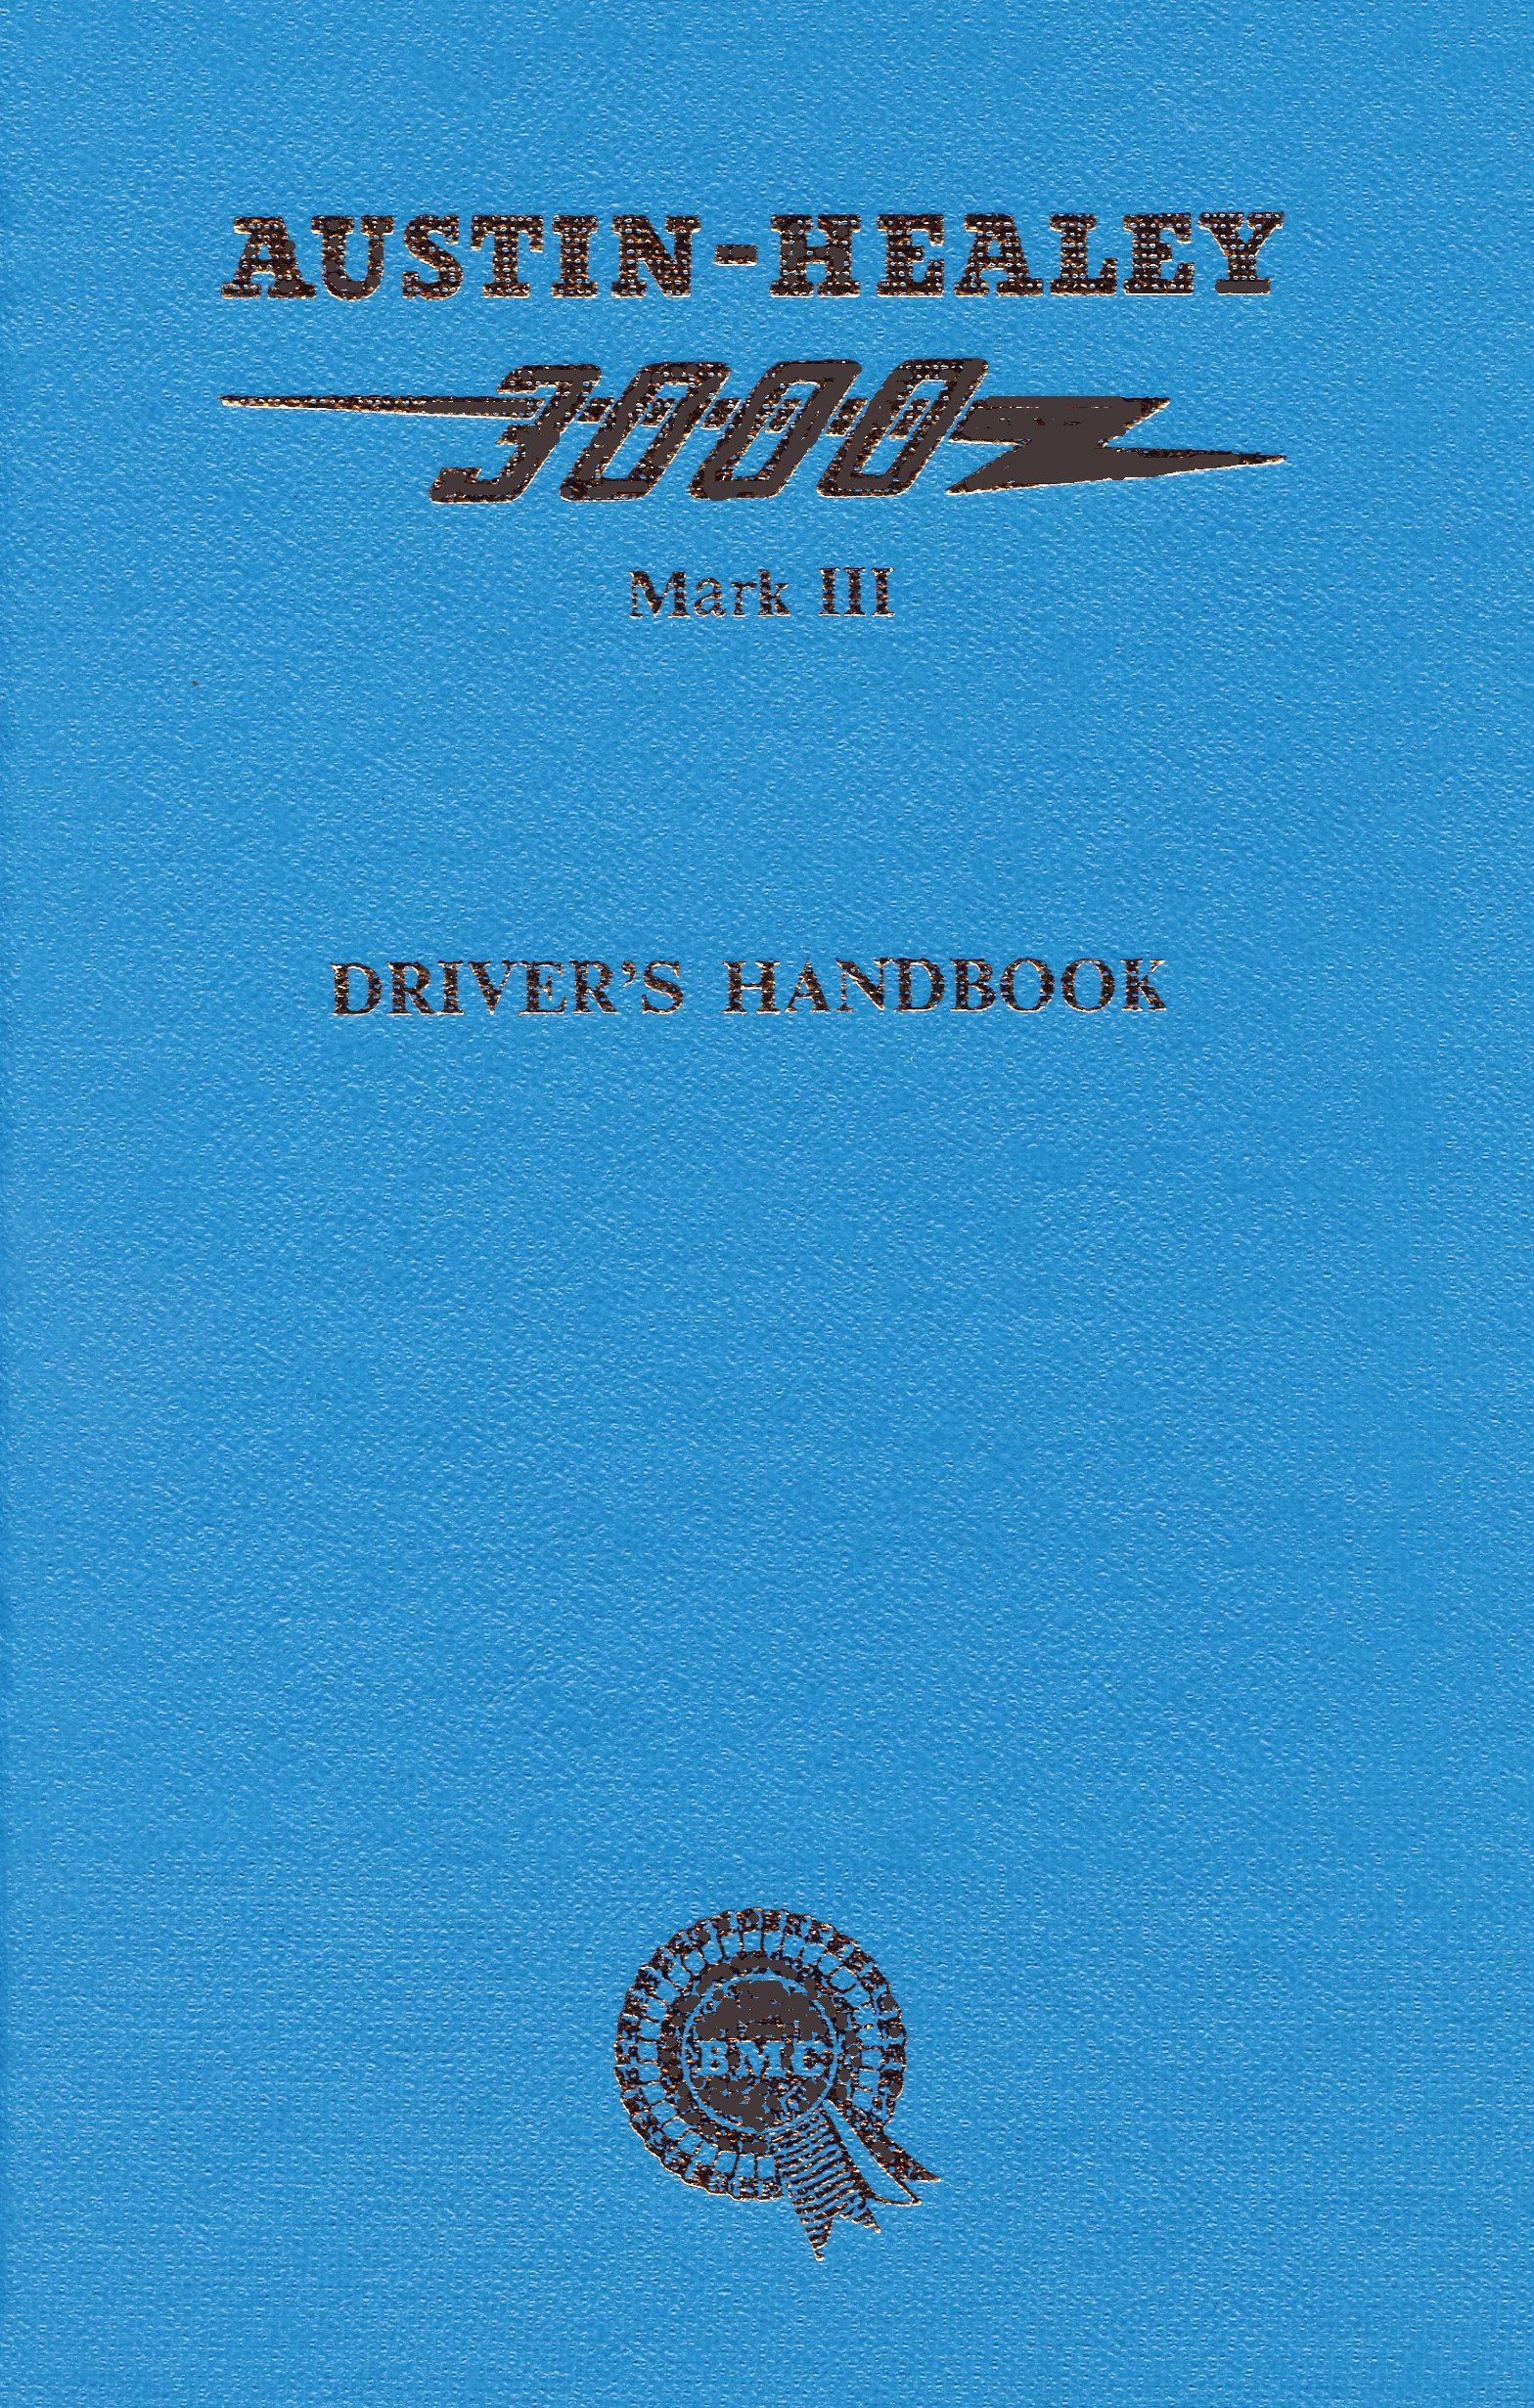 Austin Healey 3000 Mk 3 Drivers Handbook Identification And General Bj8 Wiring Diagram Data Controls Components Maintenance Owners Brooklands